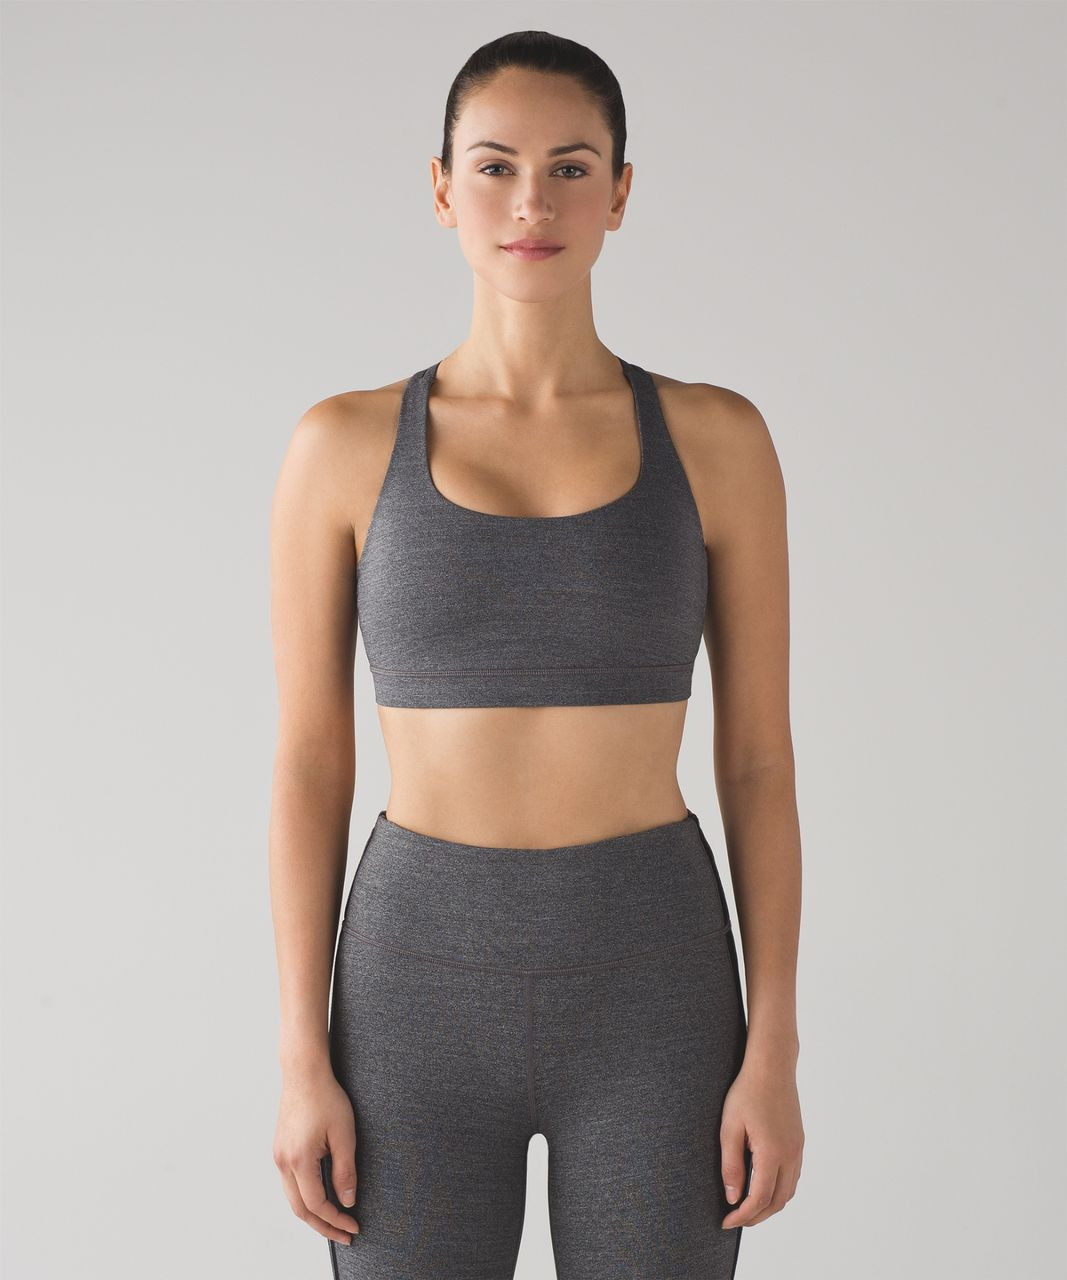 Lululemon Energy Bra - Heathered Black